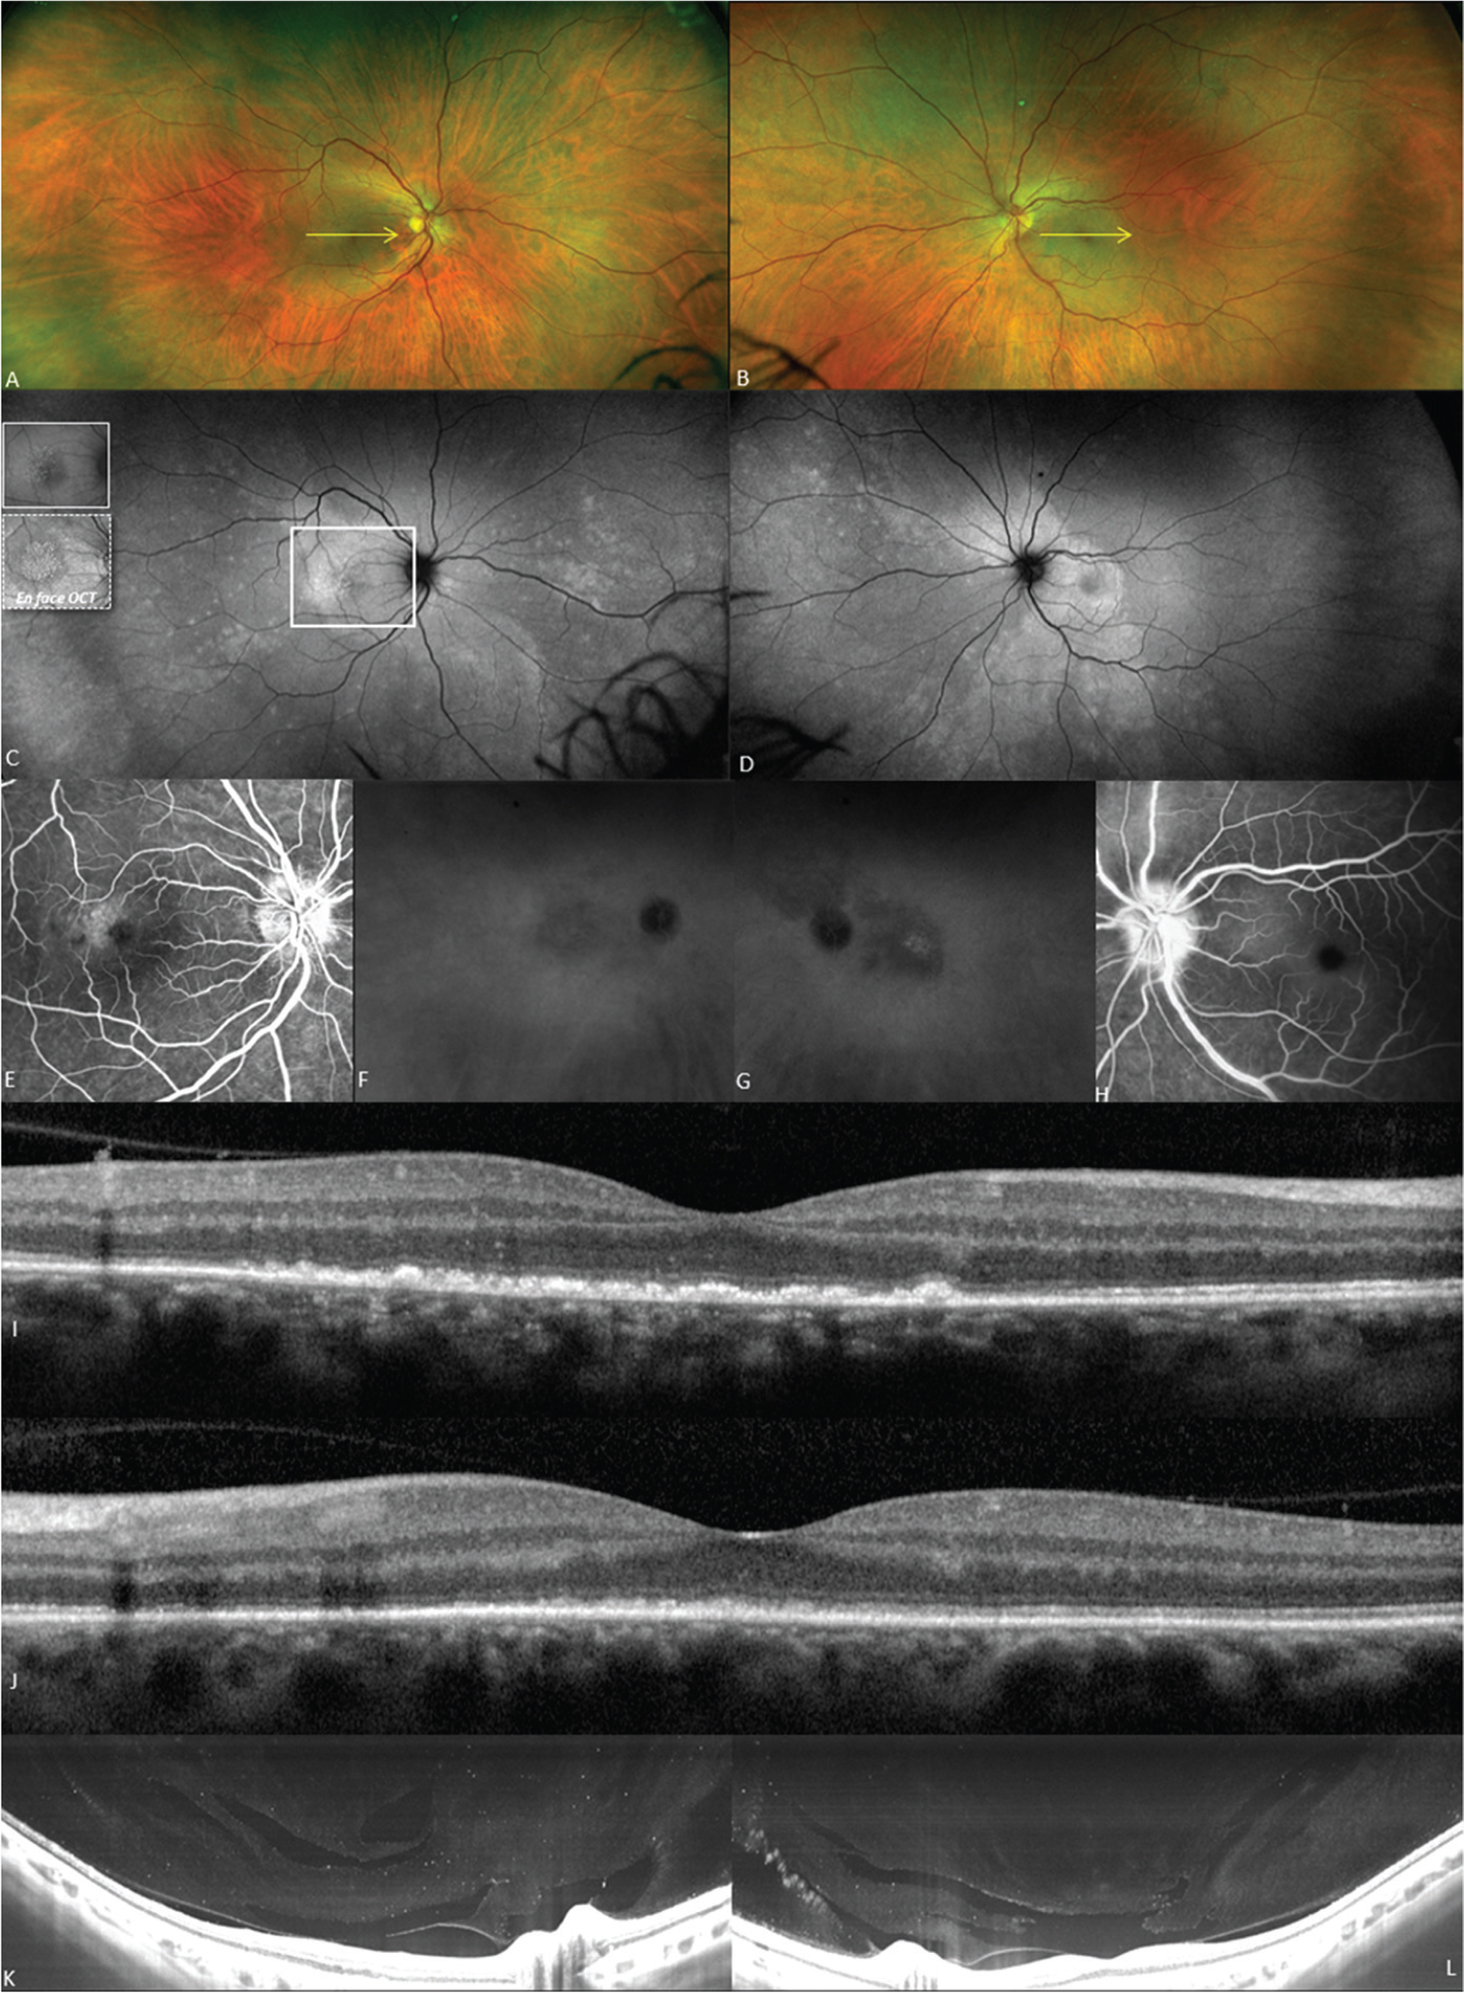 Initial presentation. (A, B) Ultra-widefield color fundus photography. (C, D) Ultra-widefield fundus autofluorescence reveals placoid lesions bilaterally surrounded by hyperautofluorescence spots. In the right macula hyperautofluorescent nodules correlate with hyperreflective spots on en face optical coherence tomography (OCT) of the outer retina (C, inset). (E, H) Fluorescein angiography reveals late staining of the macular region of the right eye and of the optic discs bilaterally. (F, G) Late-phase indocyanine green angiography reveals macular hypocyanescence. (I) OCT of the right eye reveals ellipsoid zone disruption with retinal pigment epithelial clumping. (J) OCT of the left eye reveals ellipsoid zone disruption. The location of the spectral-domain OCT B-scans correspond to the yellow arrows on the corresponding color fundus photographs. (K, L) Swept-source OCT with contrast adjustment reveals the presence of vitreous cells.